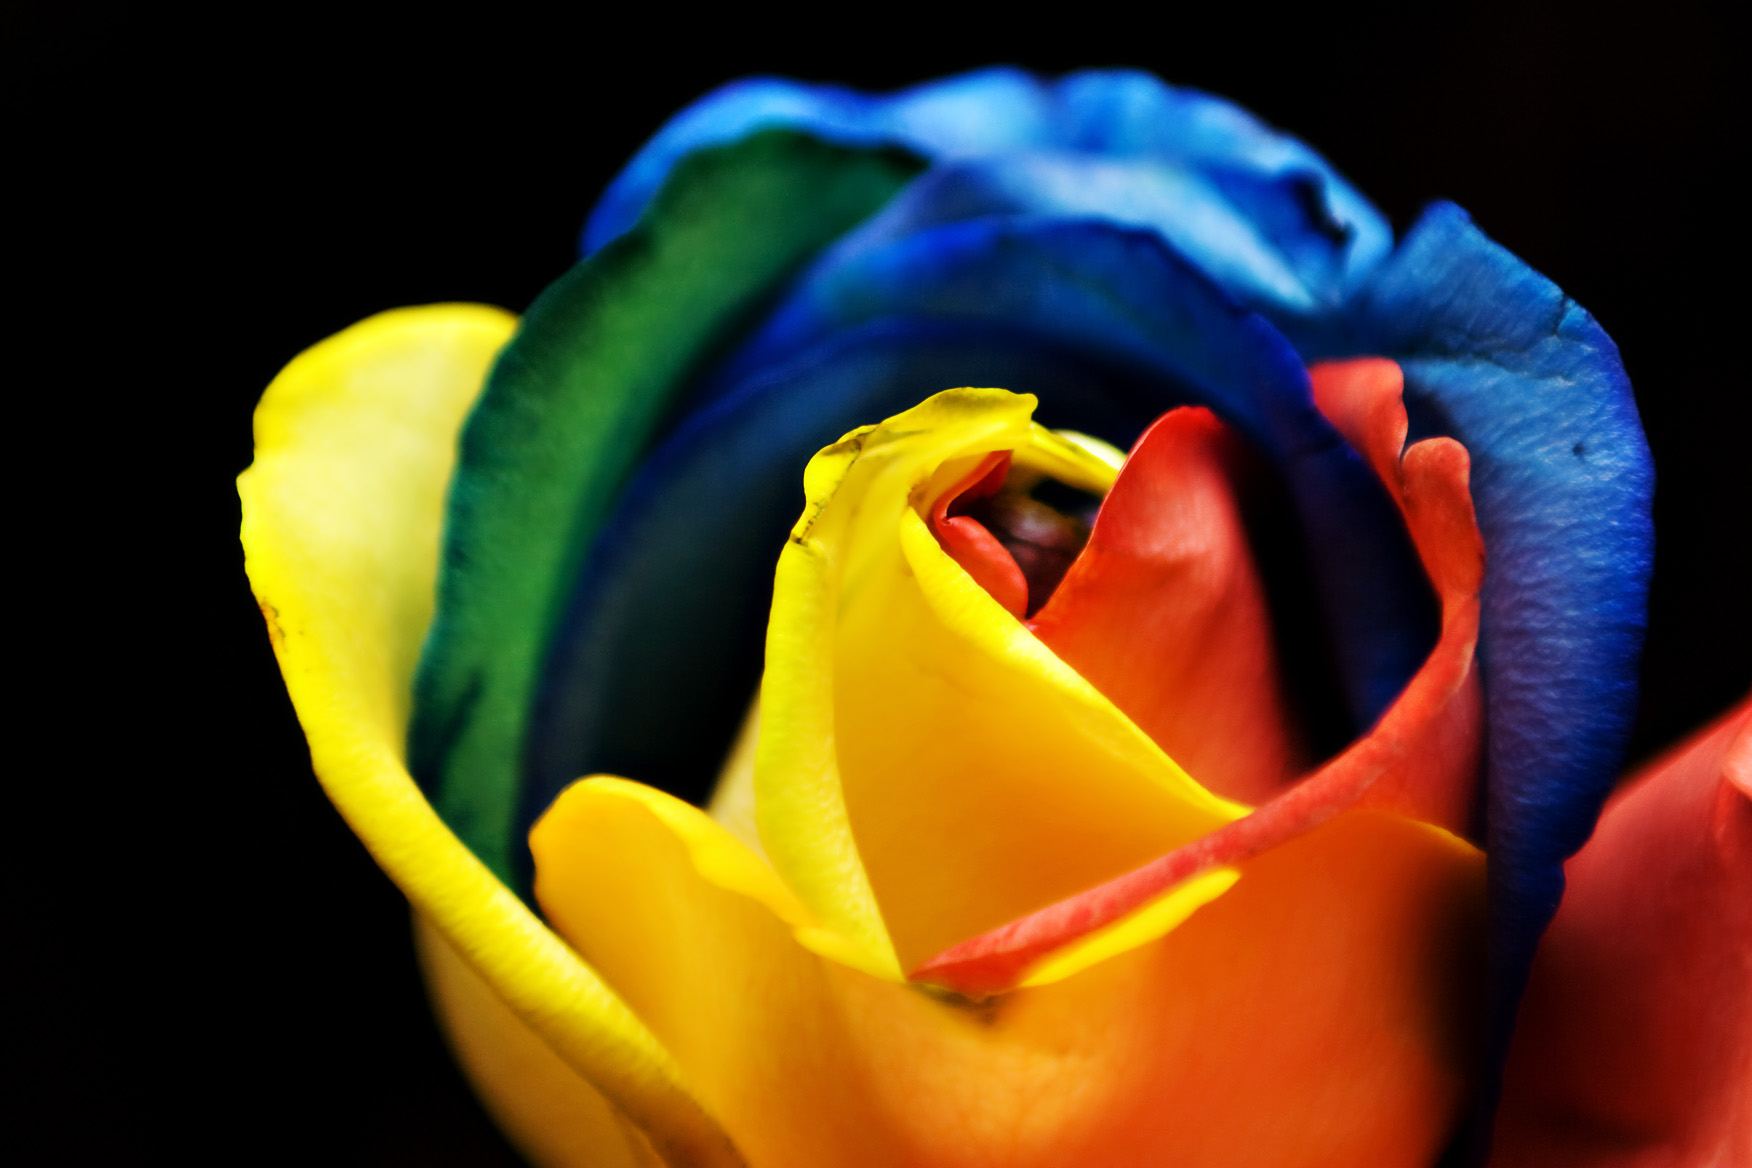 rainbow rose wikipedia